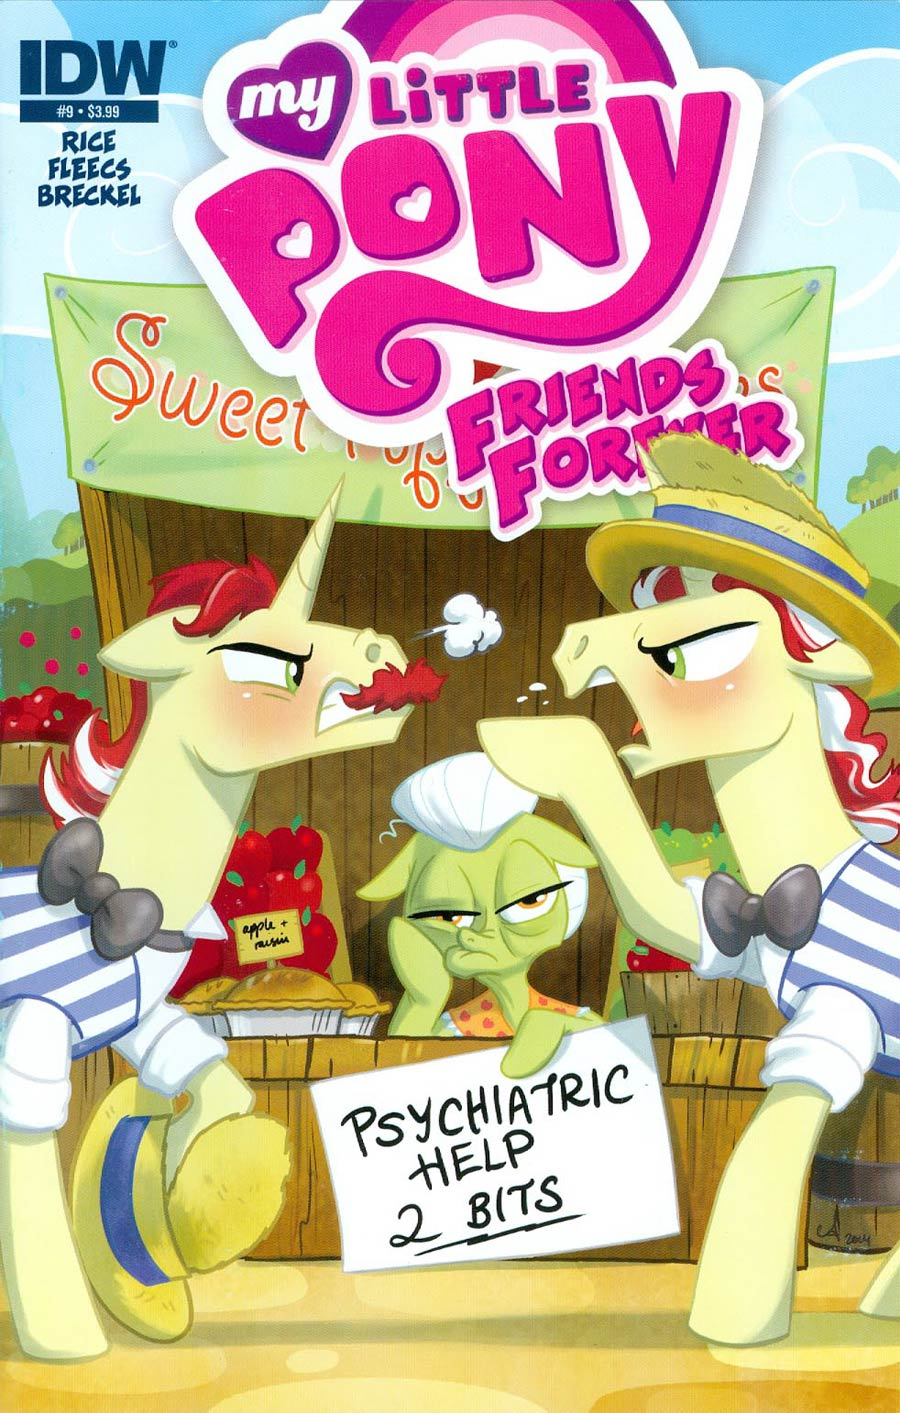 My Little Pony Friends Forever #9 Cover A Regular Amy Mebberson Cover